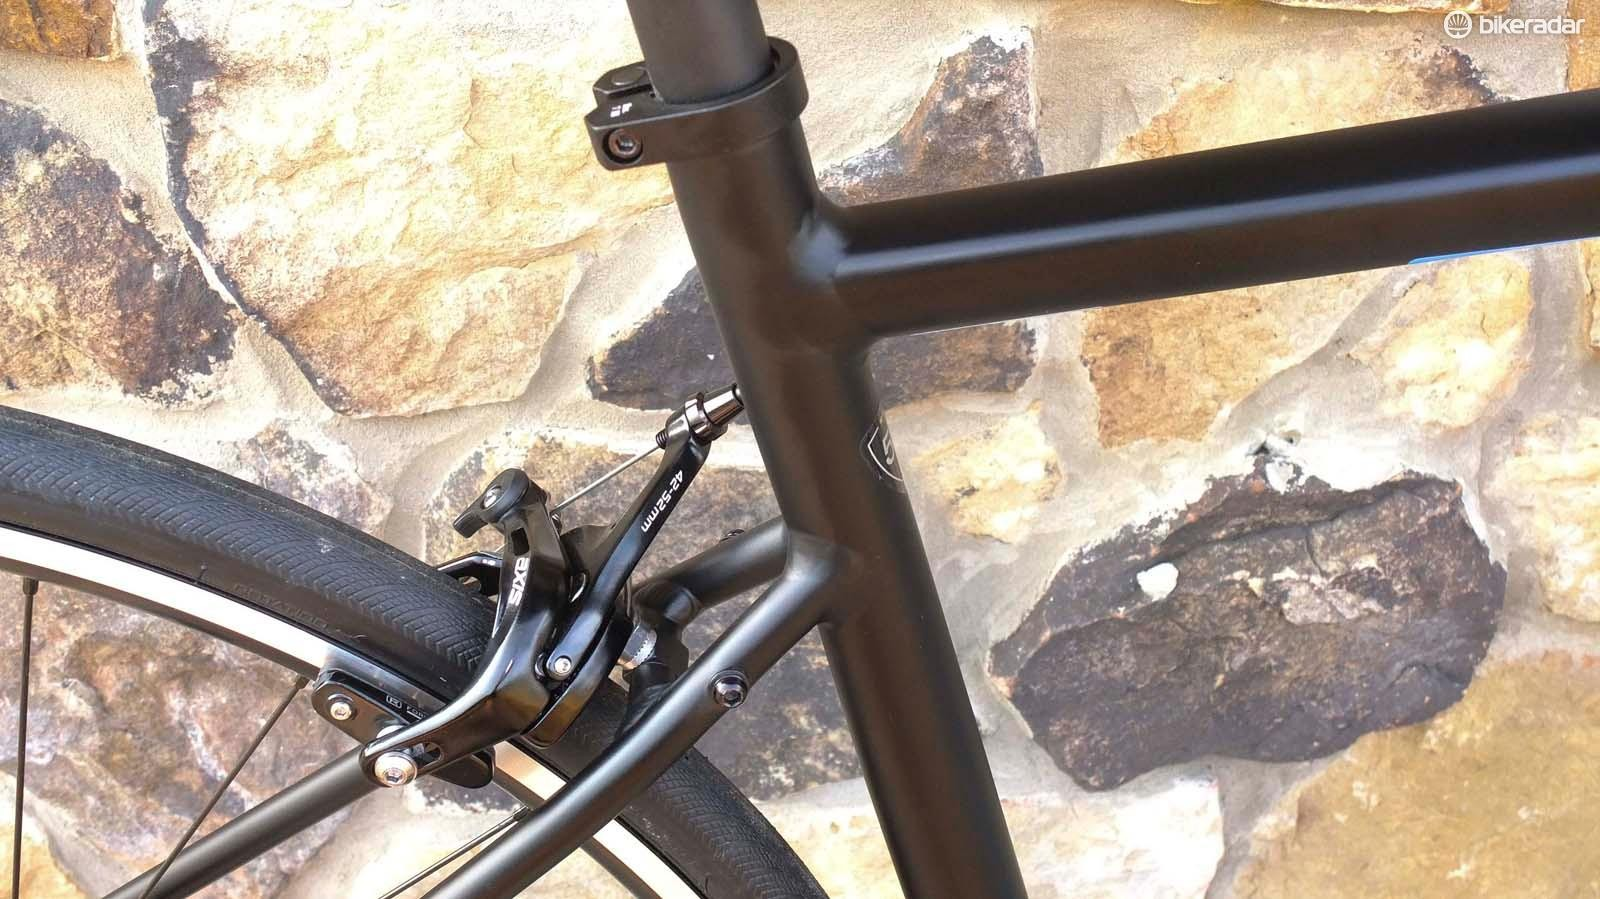 Significantly dropped seatstays feature on the Allez to improve rear compliance